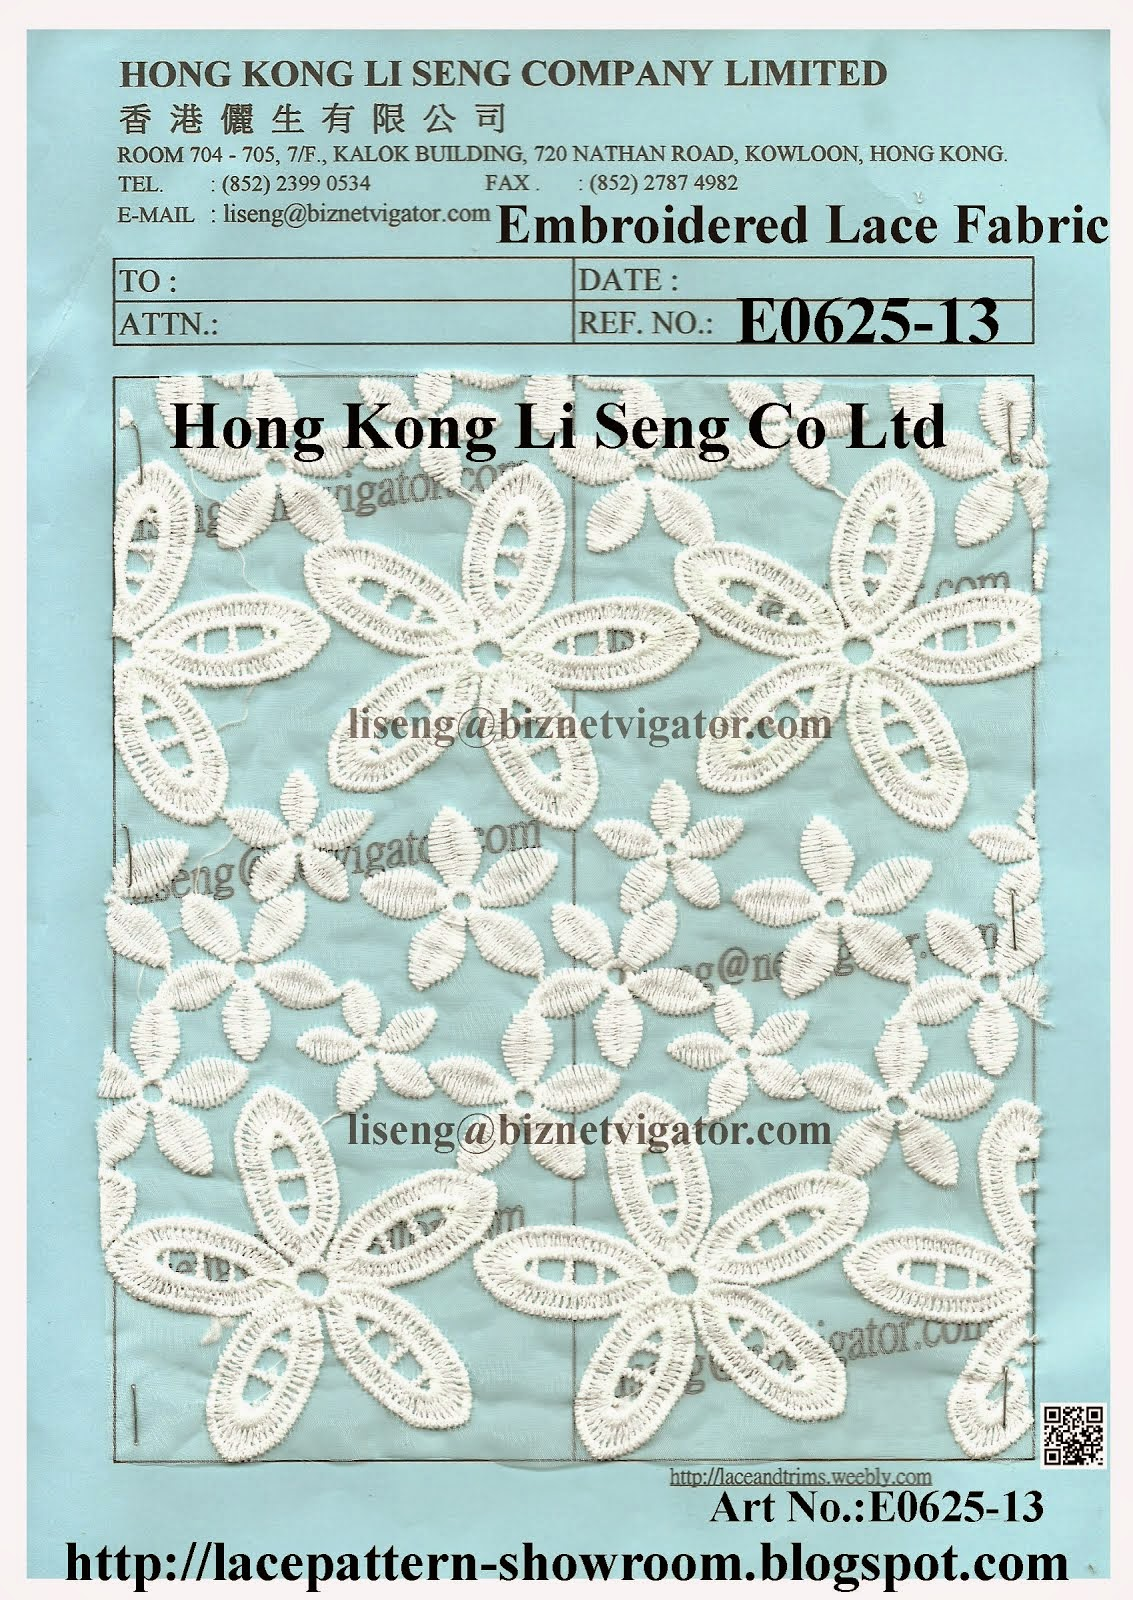 New Embroidered Net Lace Fabric Manufacturers Wholesale Supplier - Hong Kong Li Seng Co Ltd